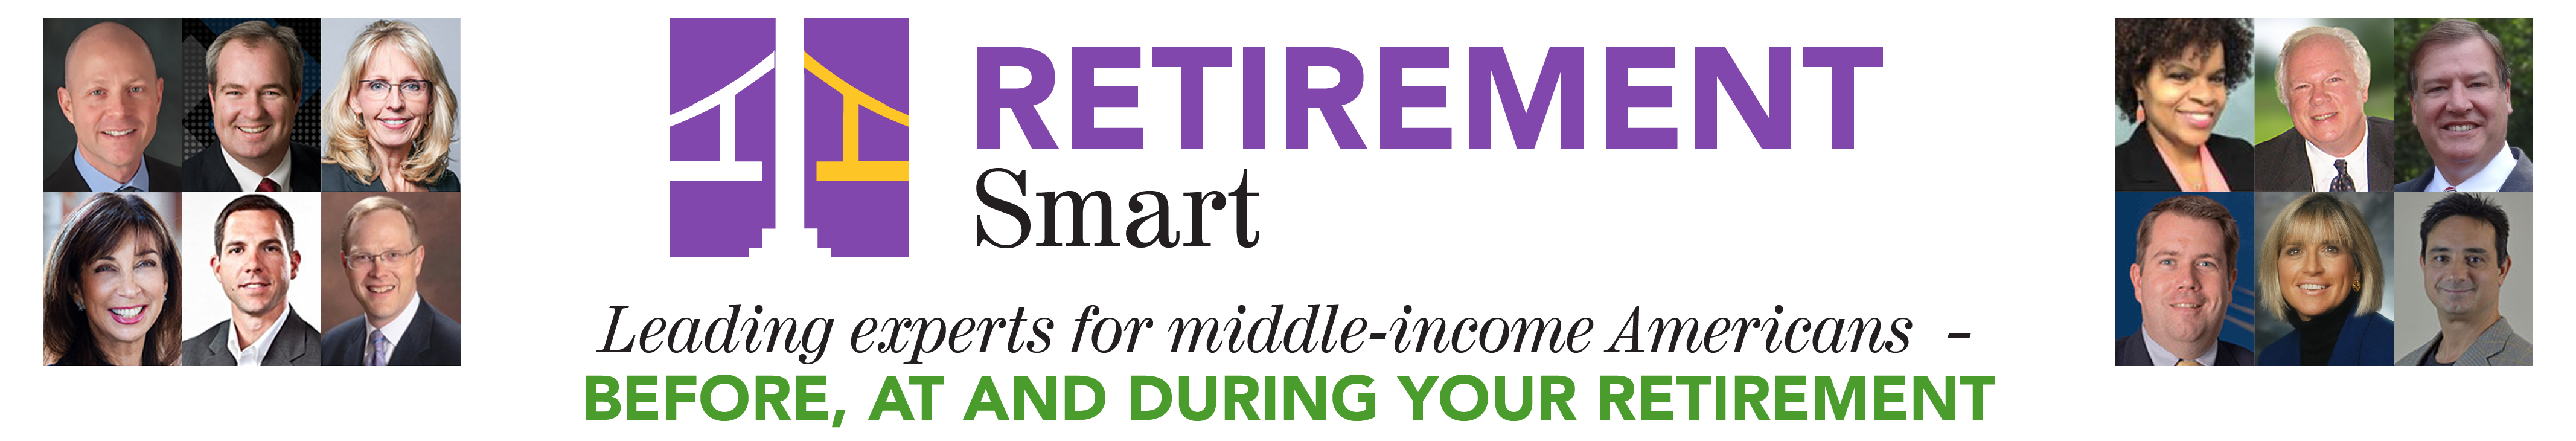 Retirement Smart for Consumers, Employees, Clients